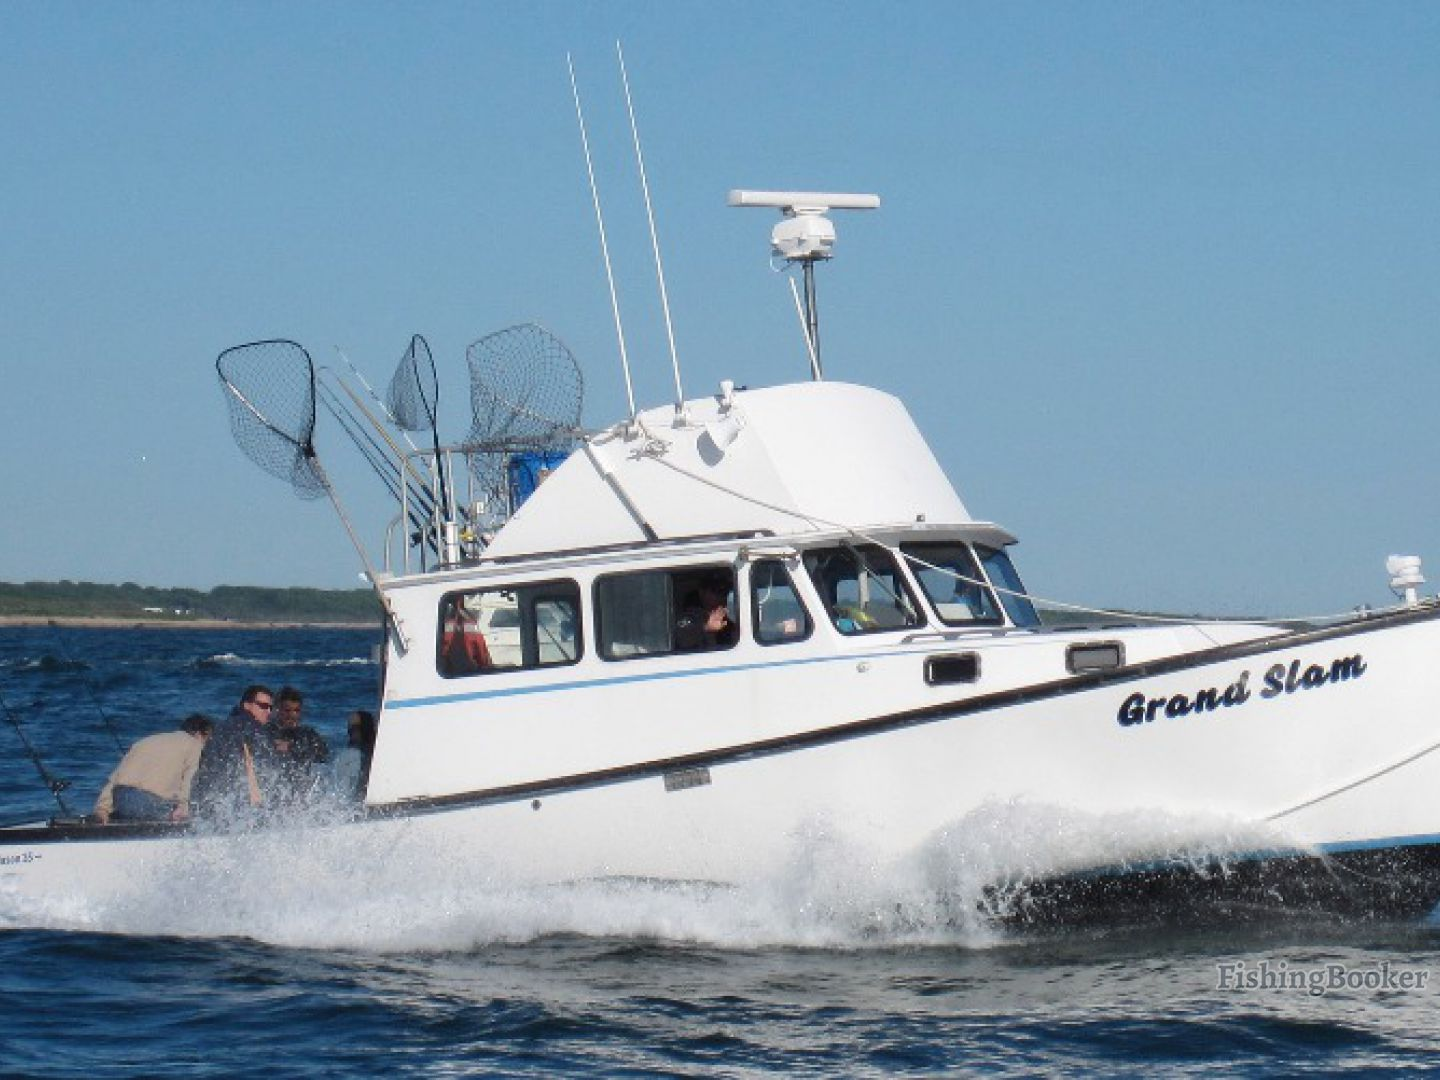 Grand slam charters montauk ny montauk new york for Ri fishing charters